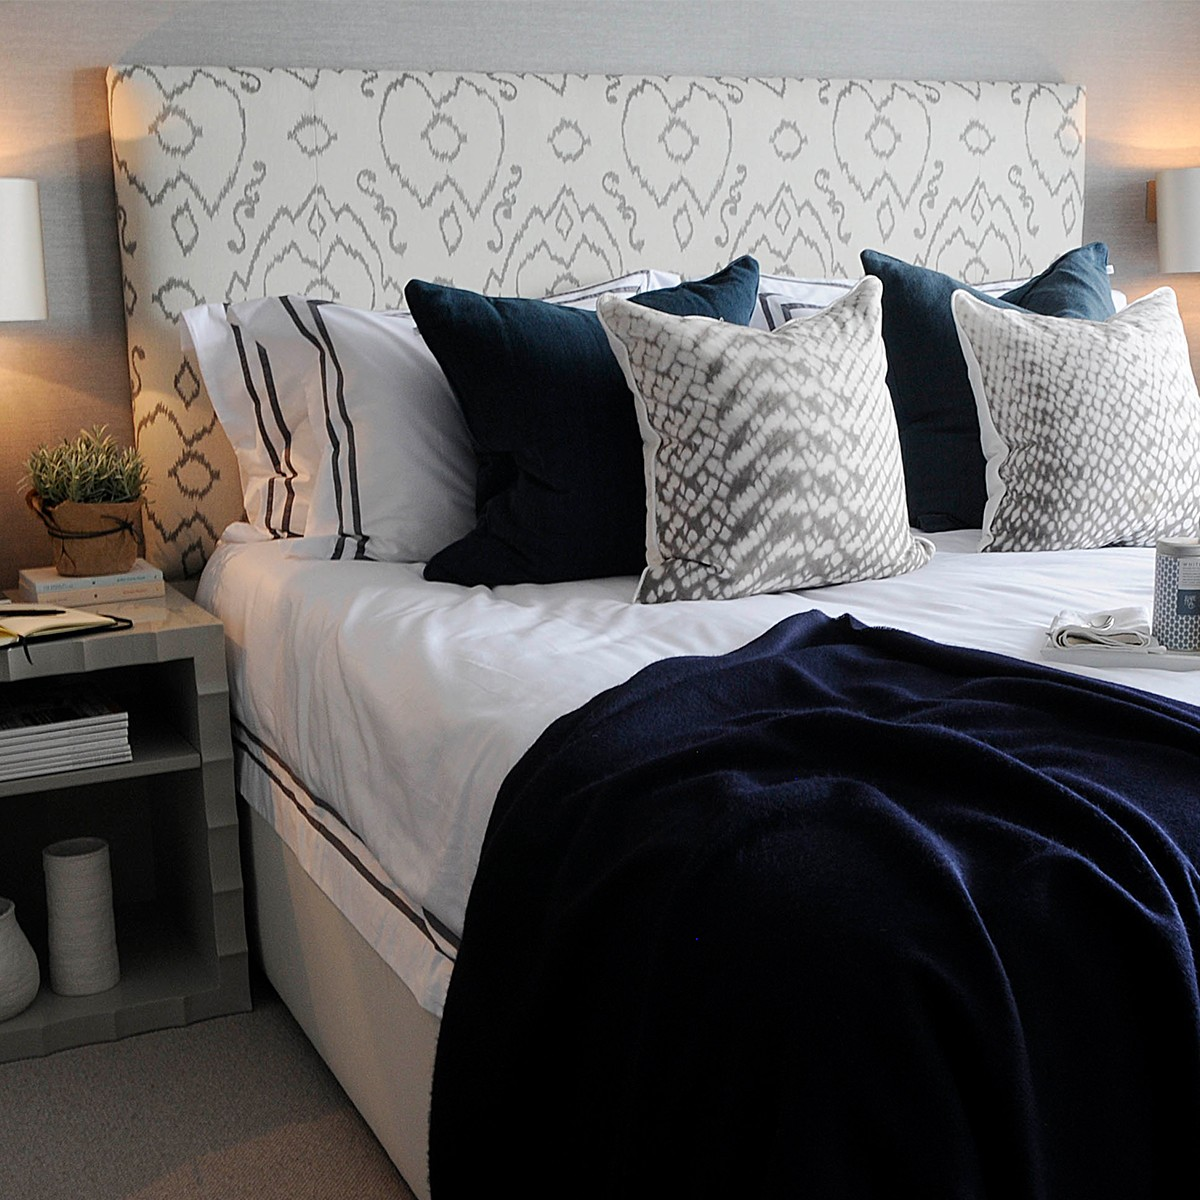 Simply Patterned Headboard Upholstered Patterned Bed